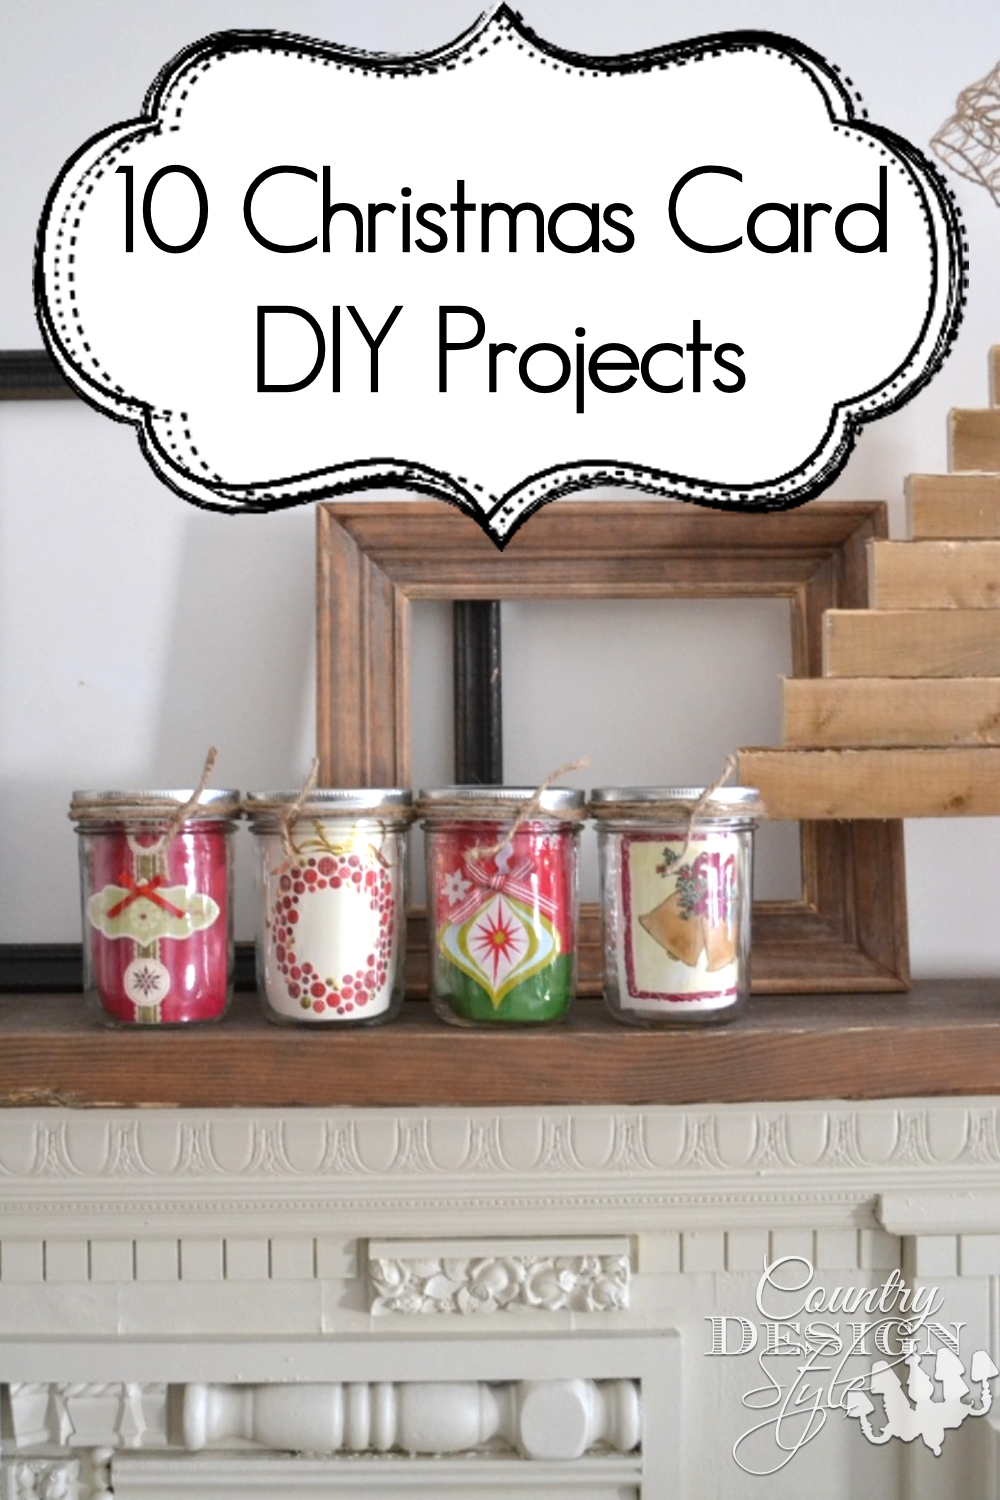 10 Holiday Card DIY Projects | Country Design Style | countrydesignstyle.com